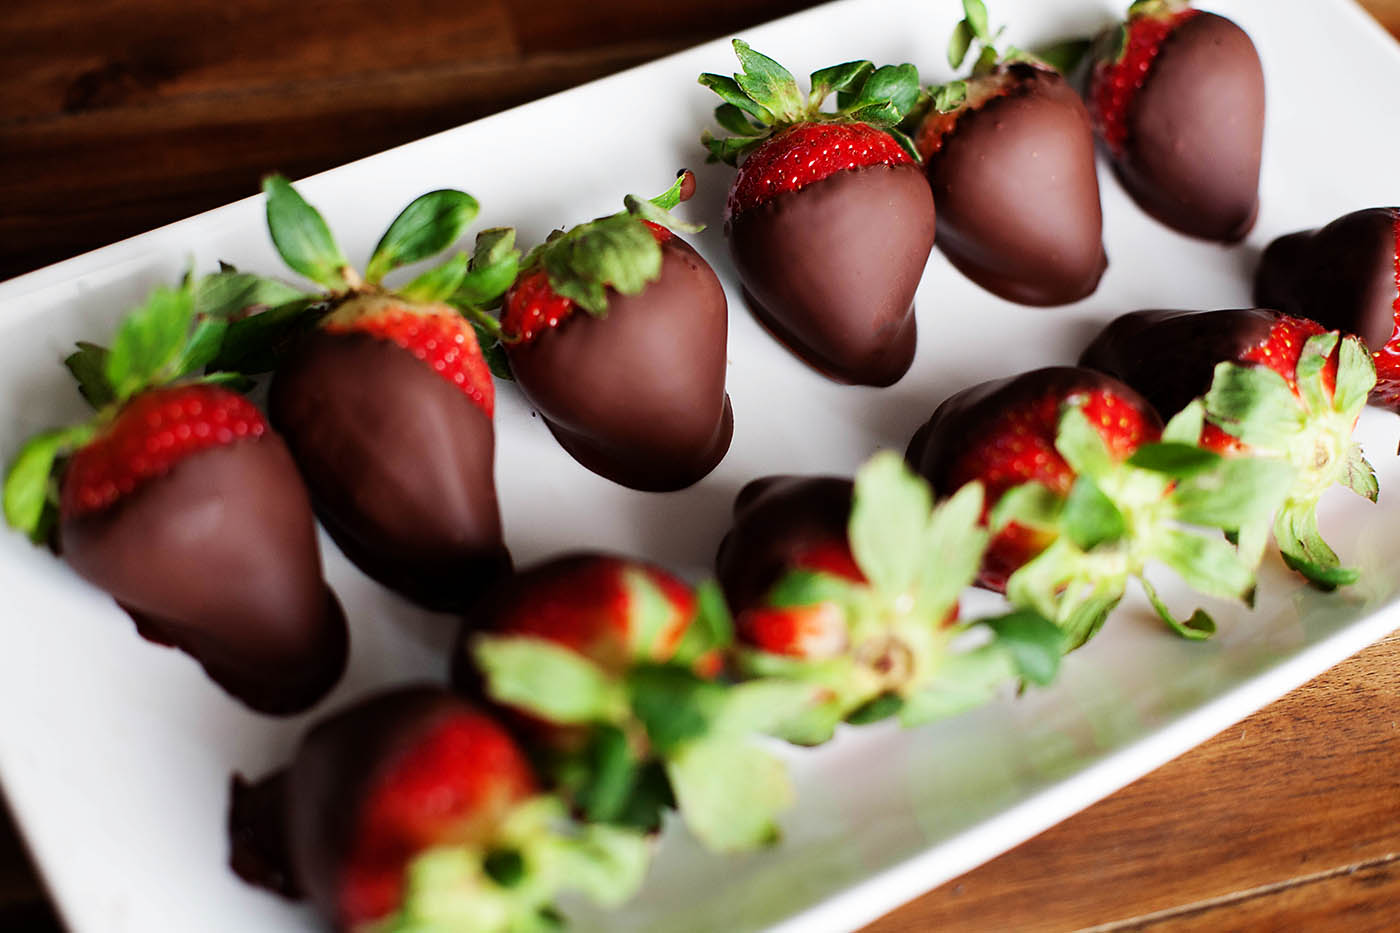 The Easiest Chocolate Covered Strawberries